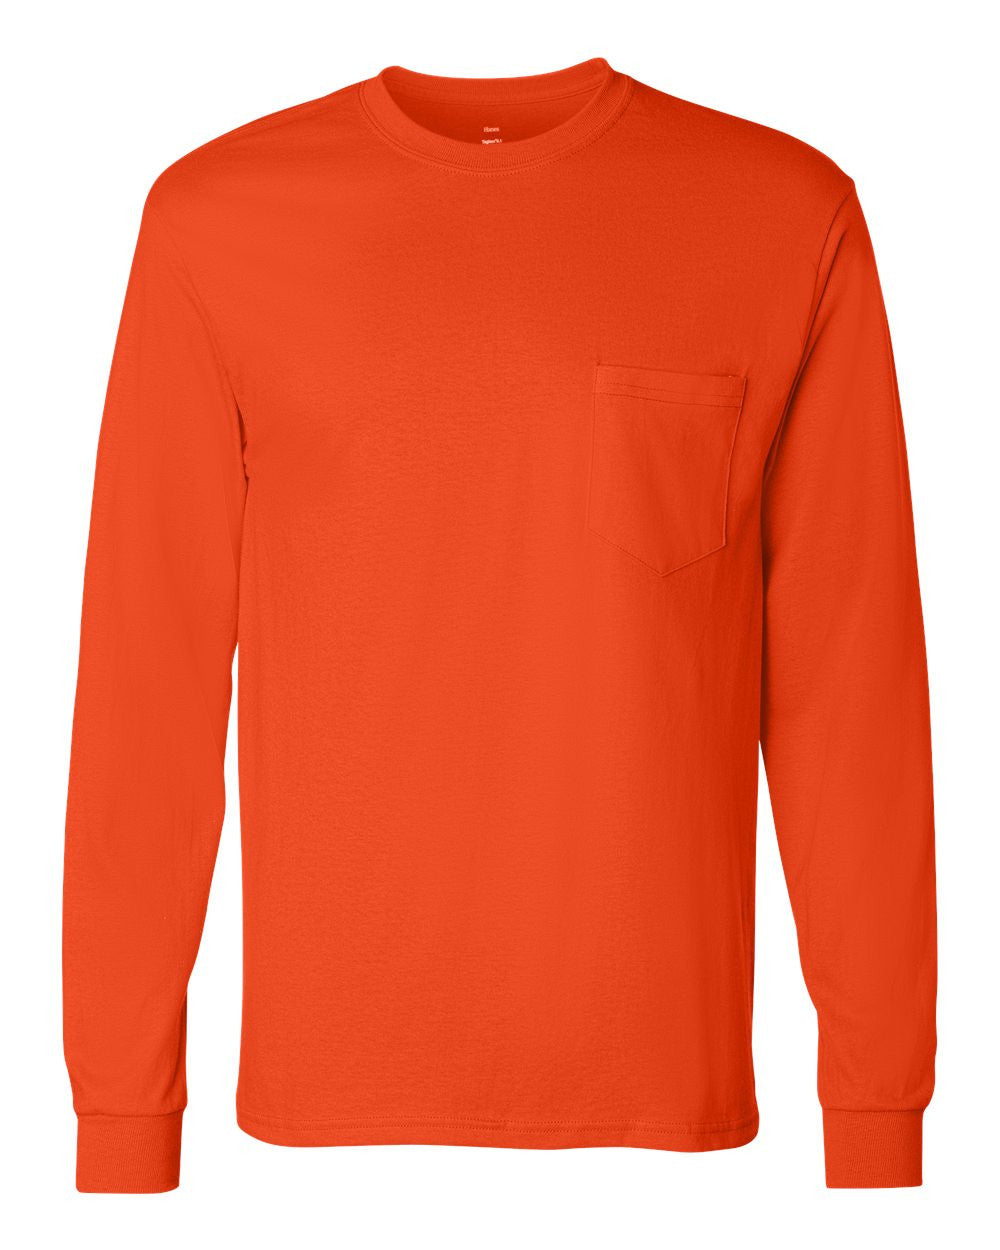 3 pack Pocket Long Sleeve T-shirts by Hanes